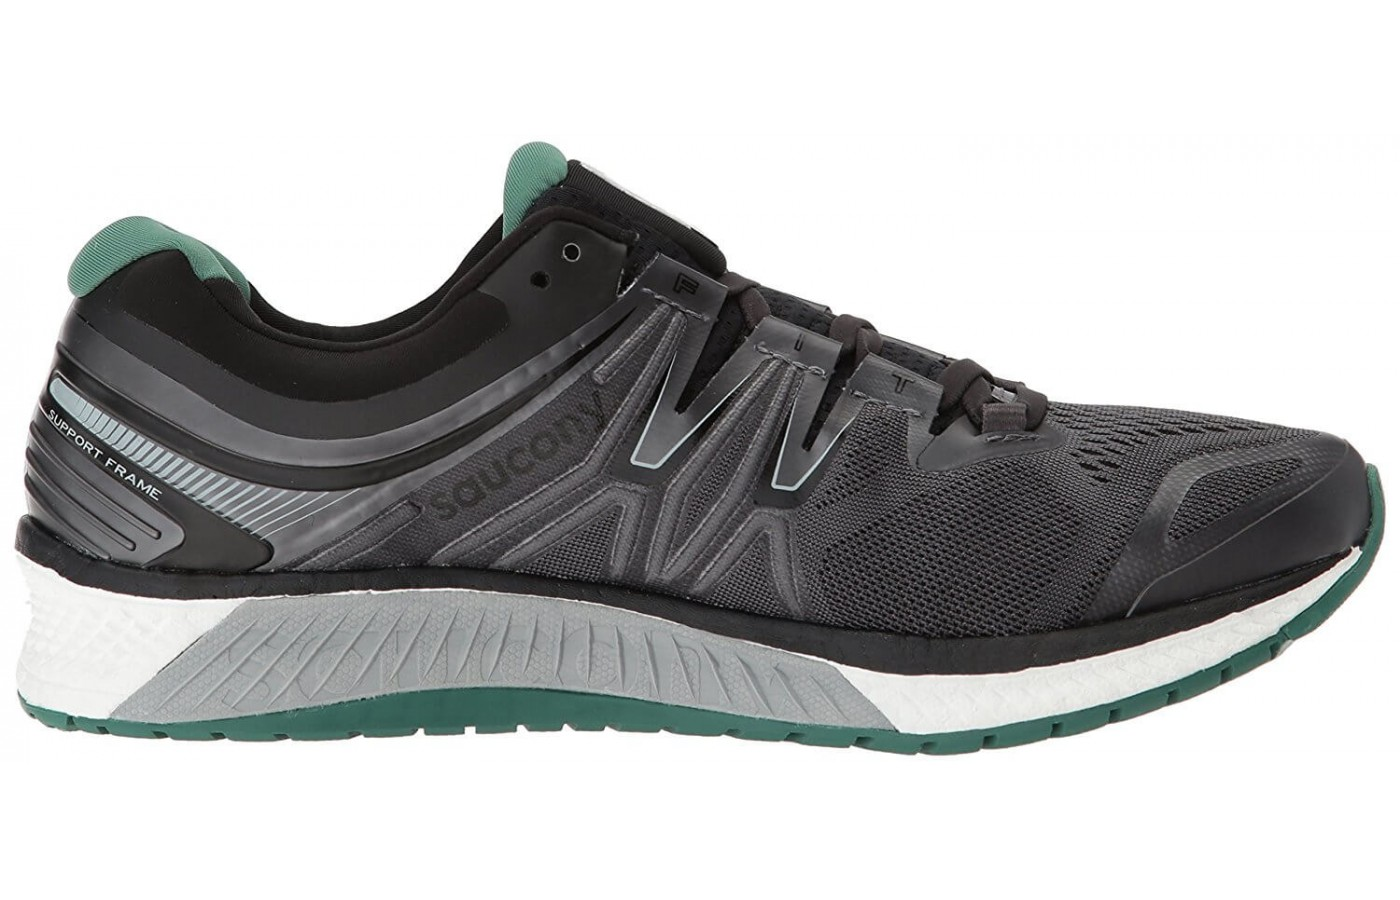 The Saucony Hurricane ISO 4 features full-length EVERUN cushioning